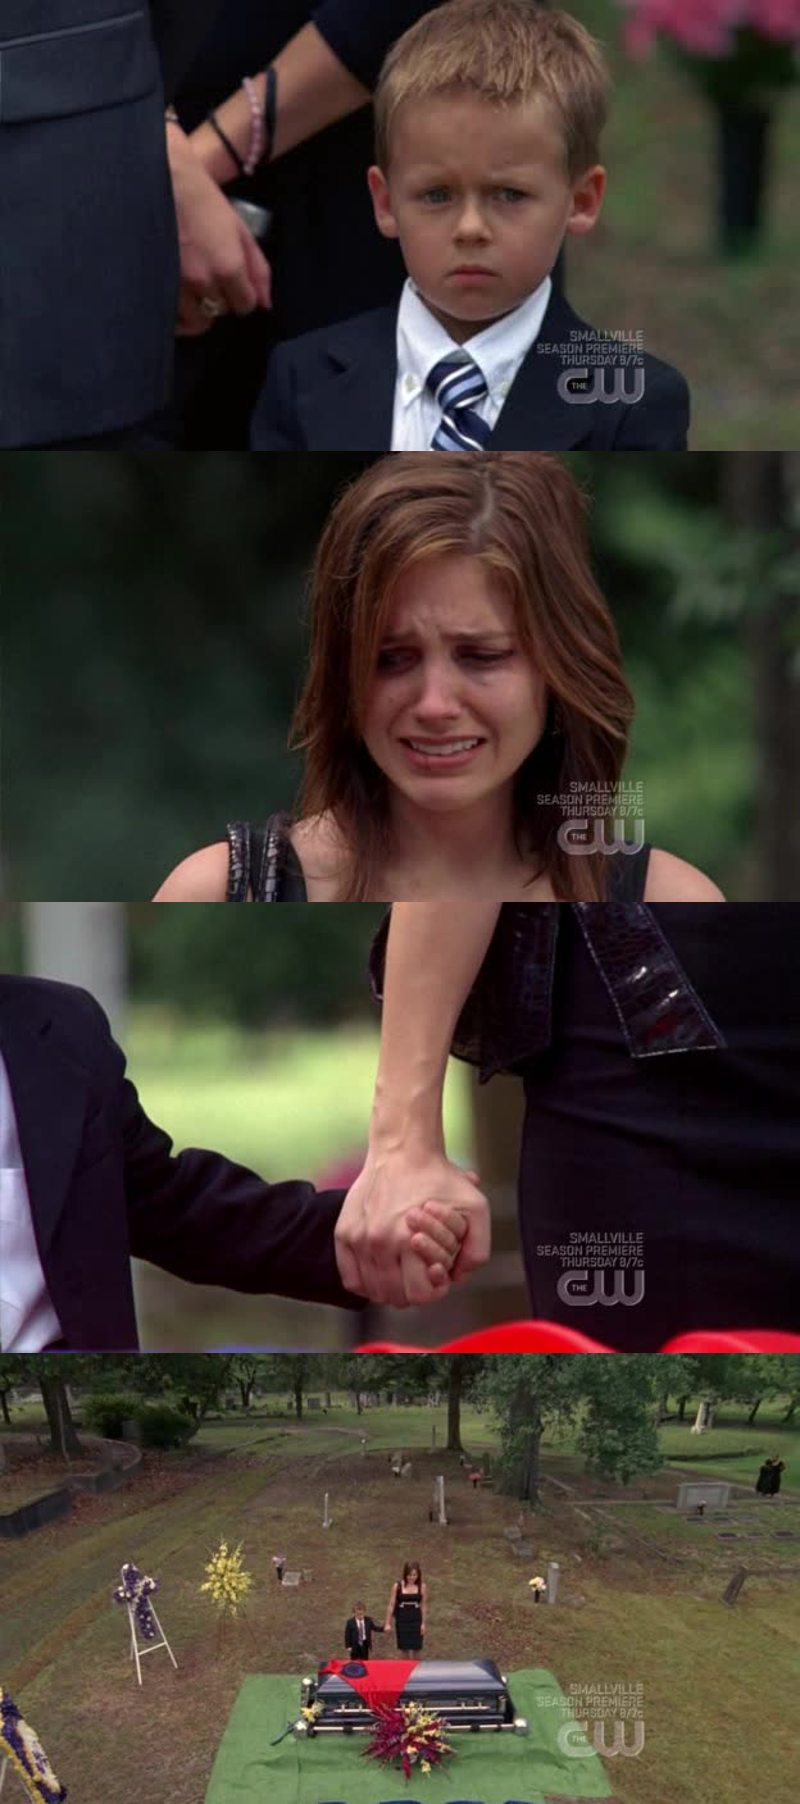 this episode was the most sad... I cried a lot 😭